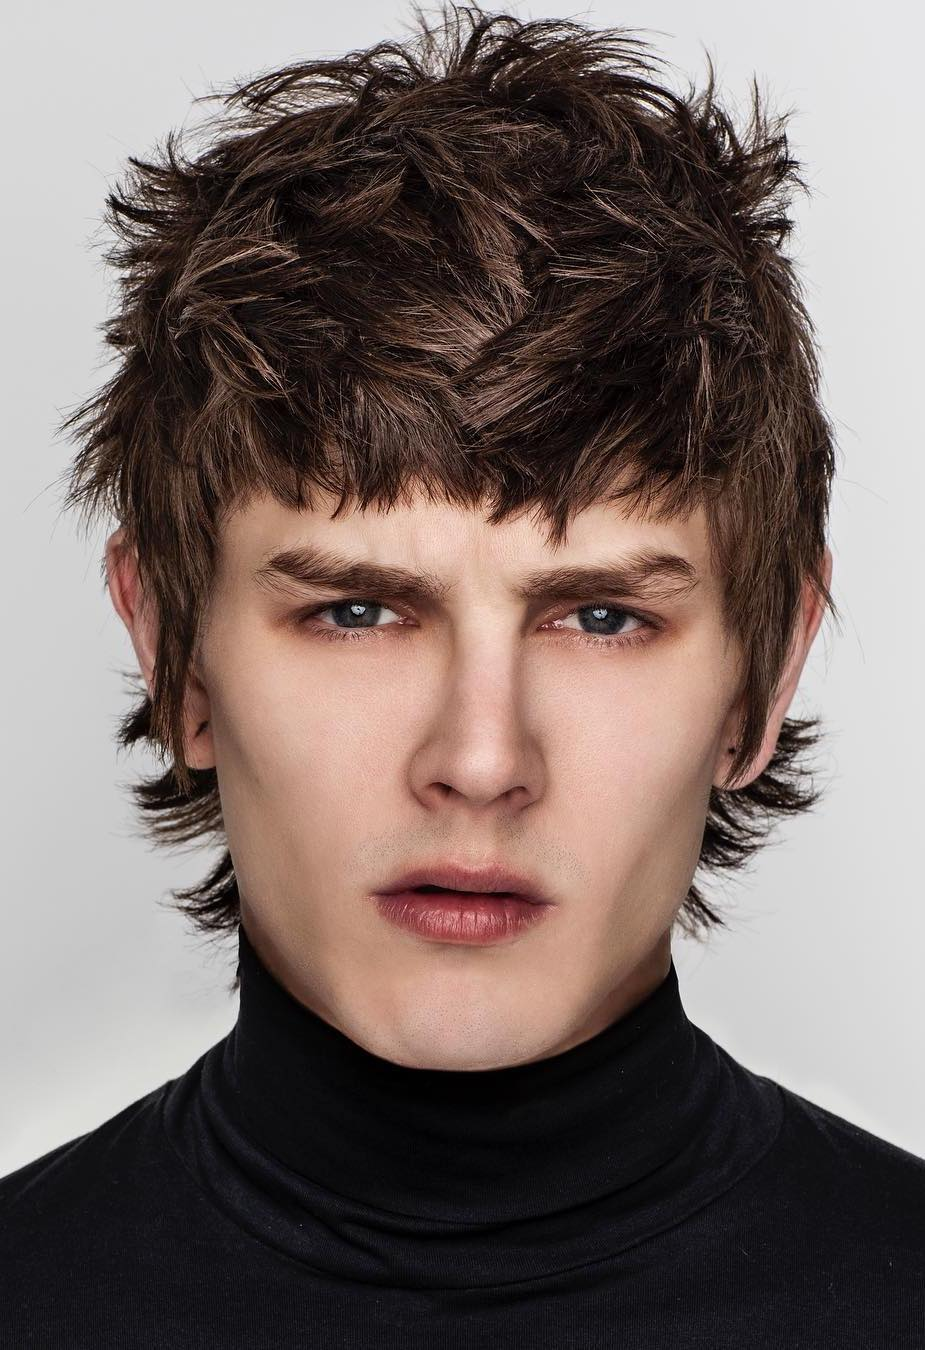 Long and Textured with mens fringe hairstyles